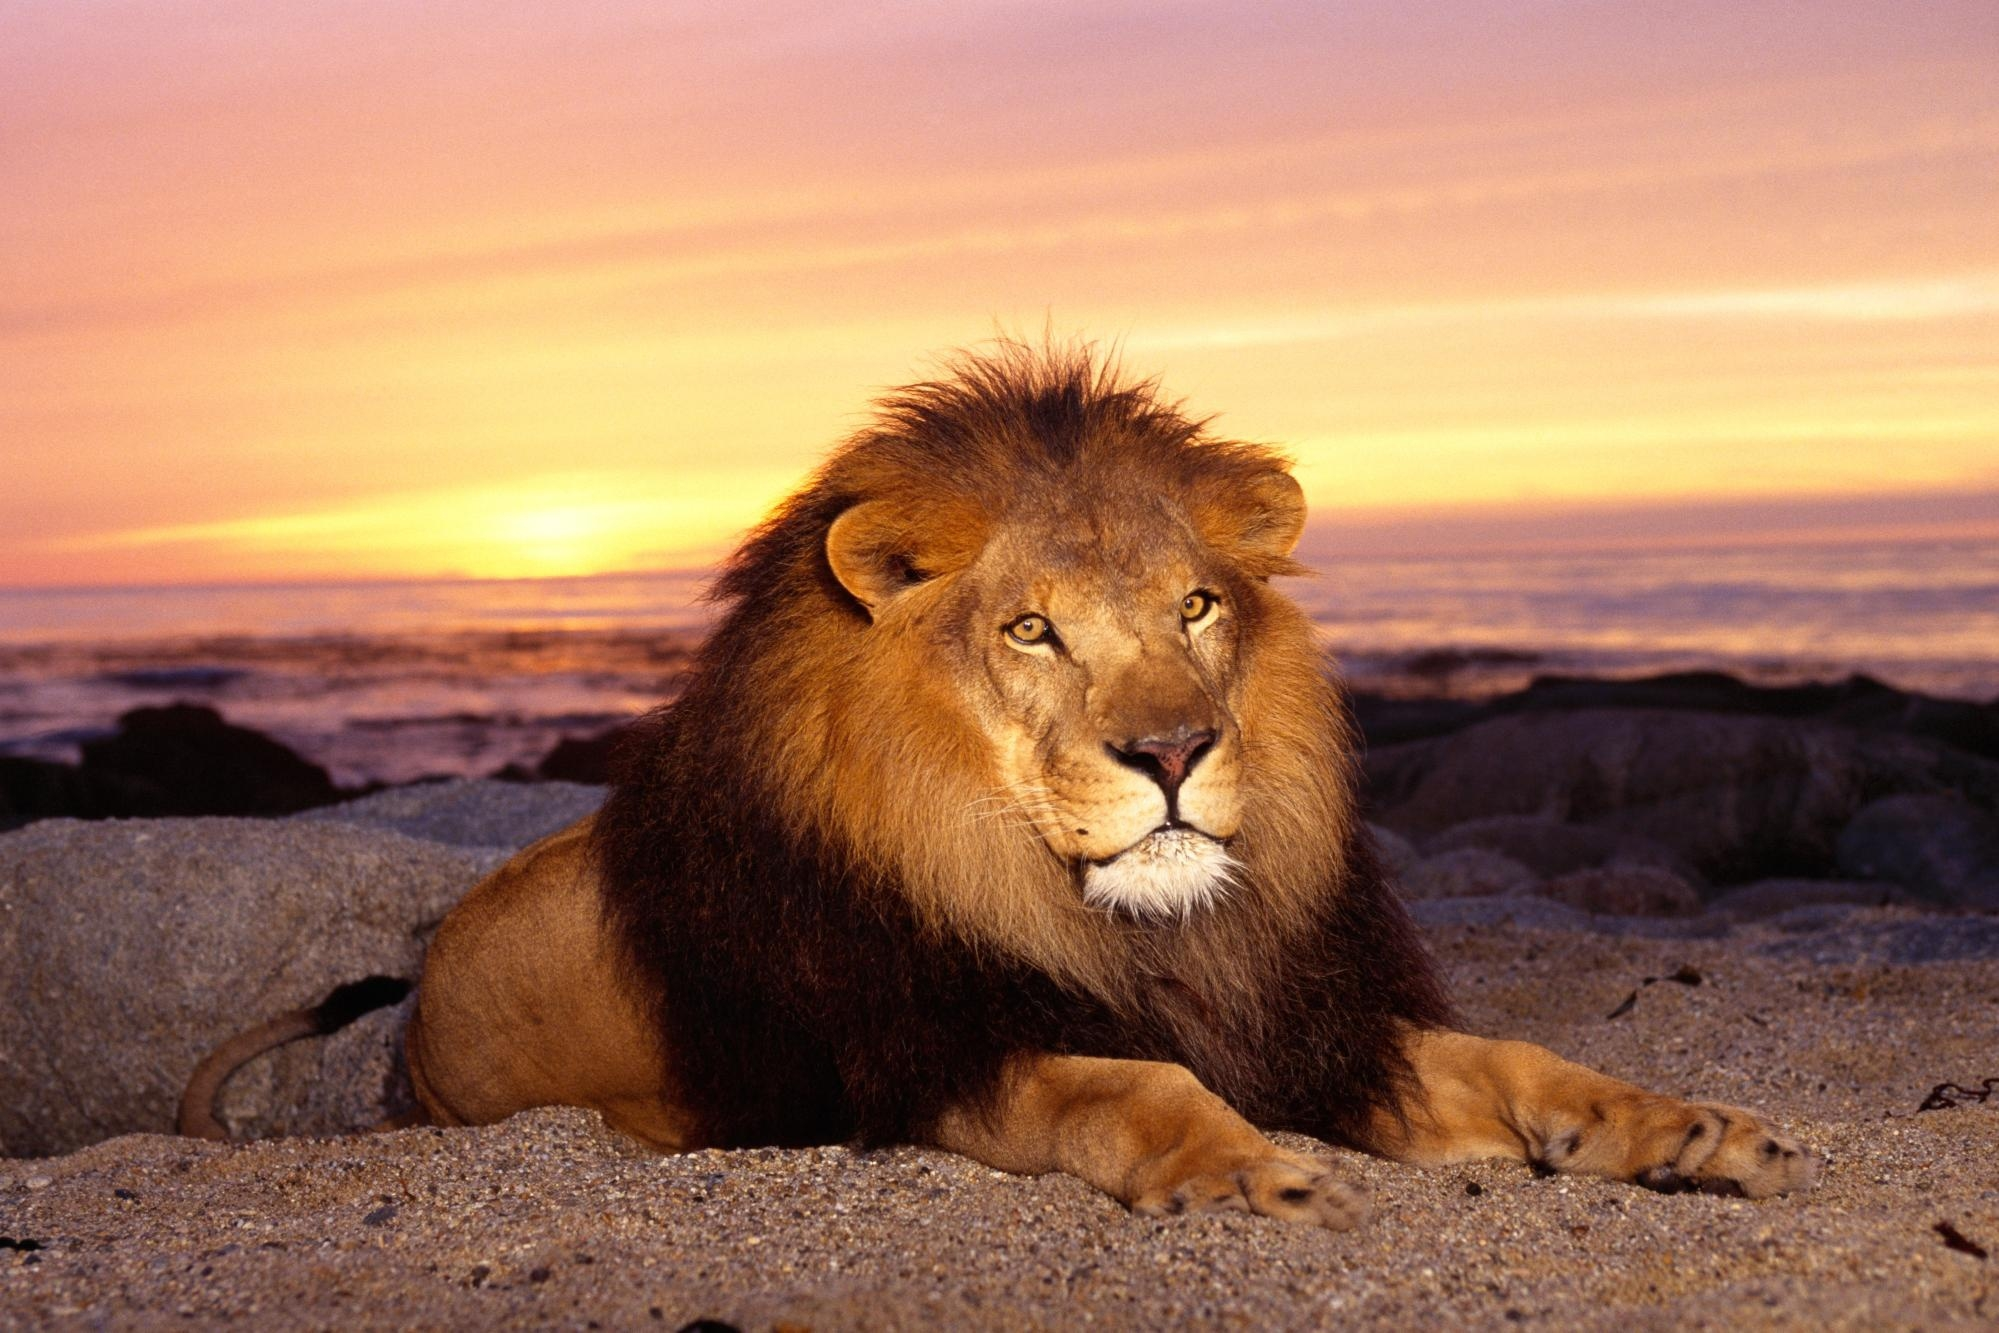 150242 download wallpaper Animals, Lion, Sunset, Mane, King Of Beasts, King Of The Beasts, Predator, To Lie Down, Lie, Calmness, Tranquillity screensavers and pictures for free